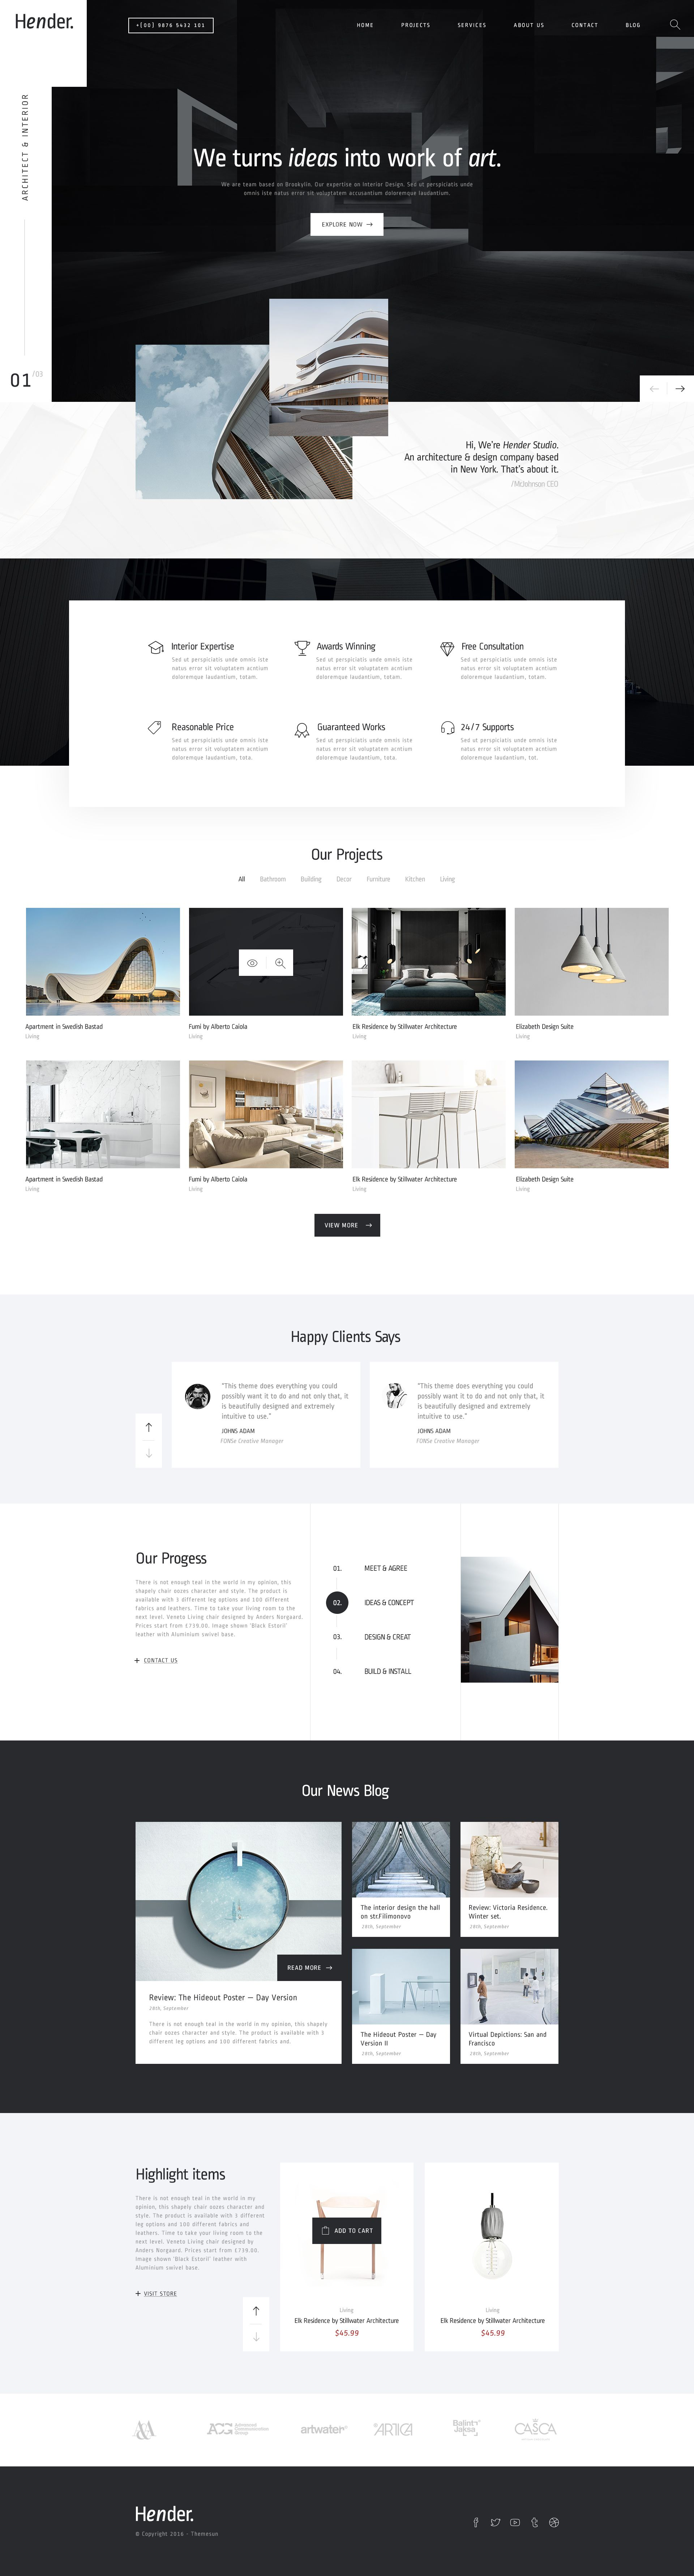 Hender Architecture and Interior Design Agency PSD Template